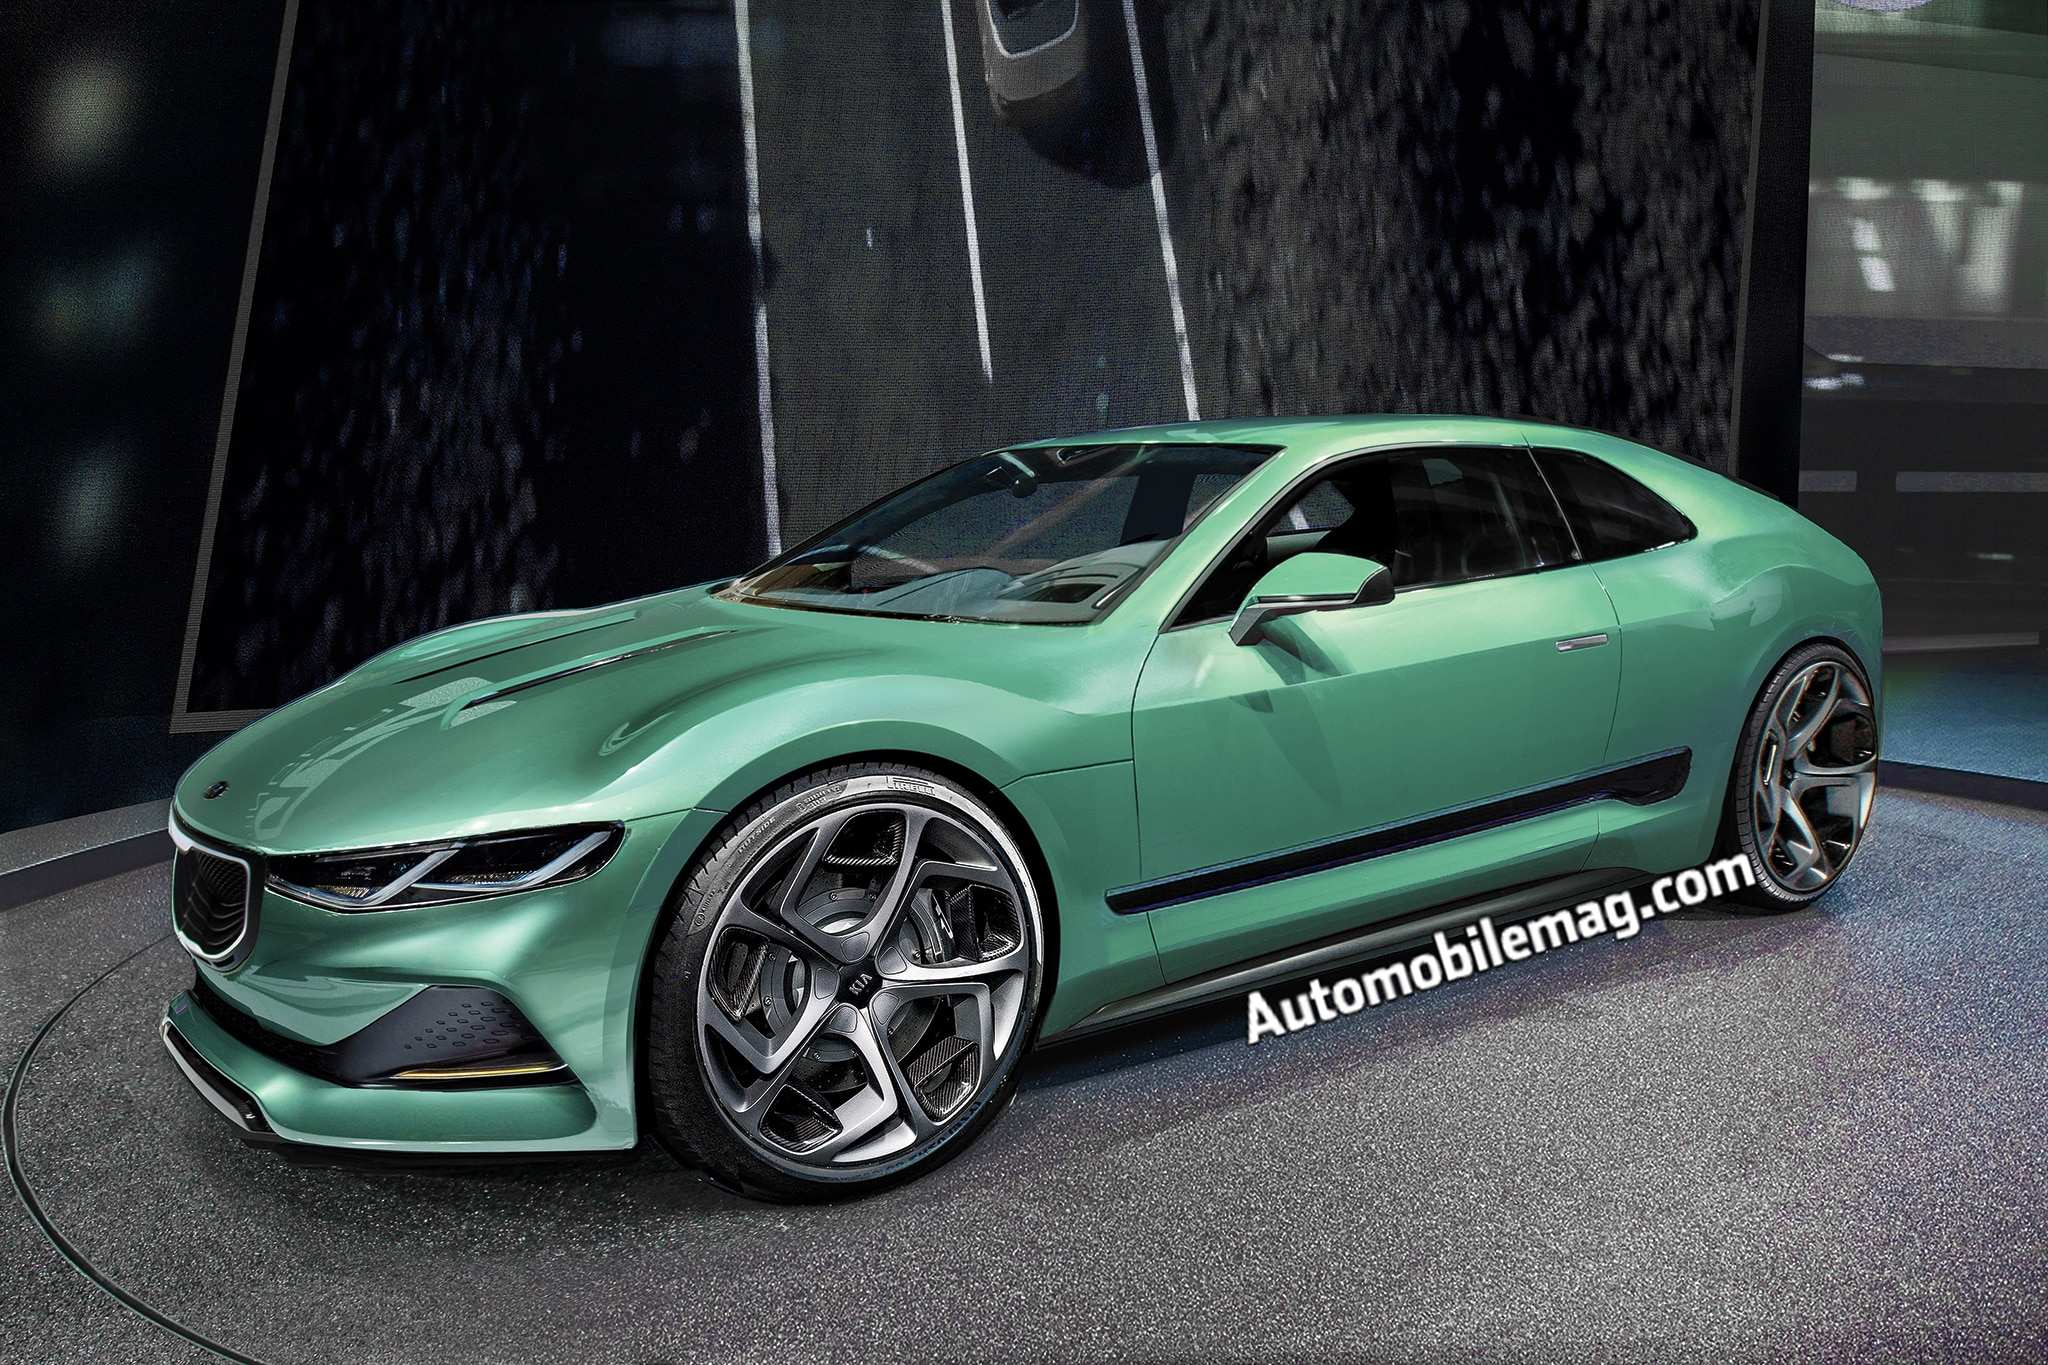 17 Great Dodge Concept Cars 2020 Price by Dodge Concept Cars 2020